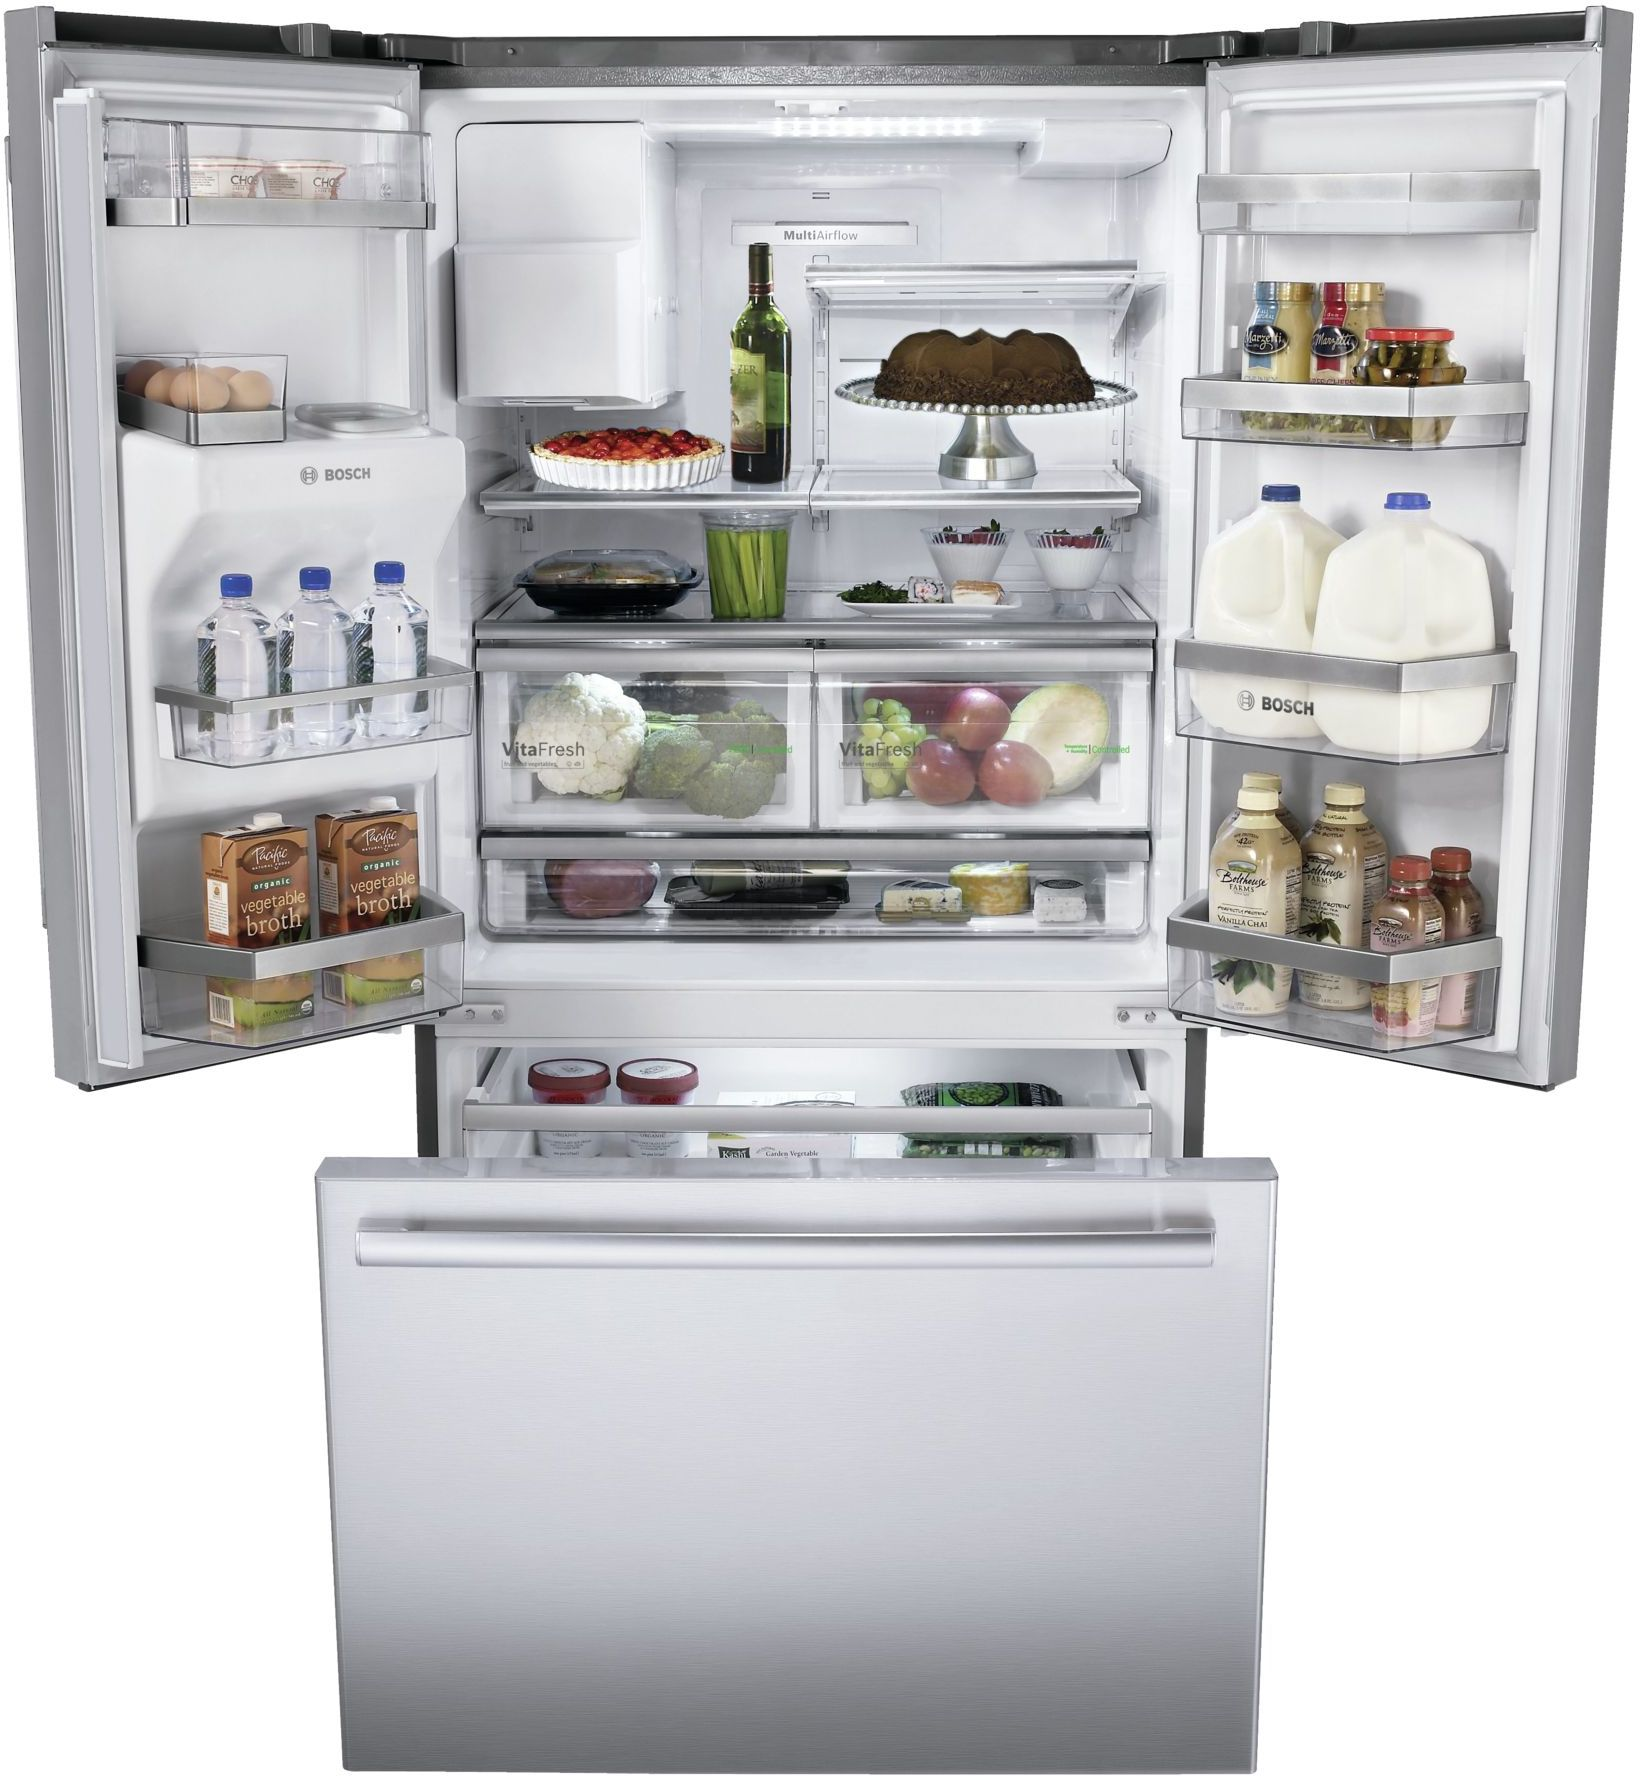 Bosch 800 Series 26 Cu Ft French Door Refrigerator Stainless Steel